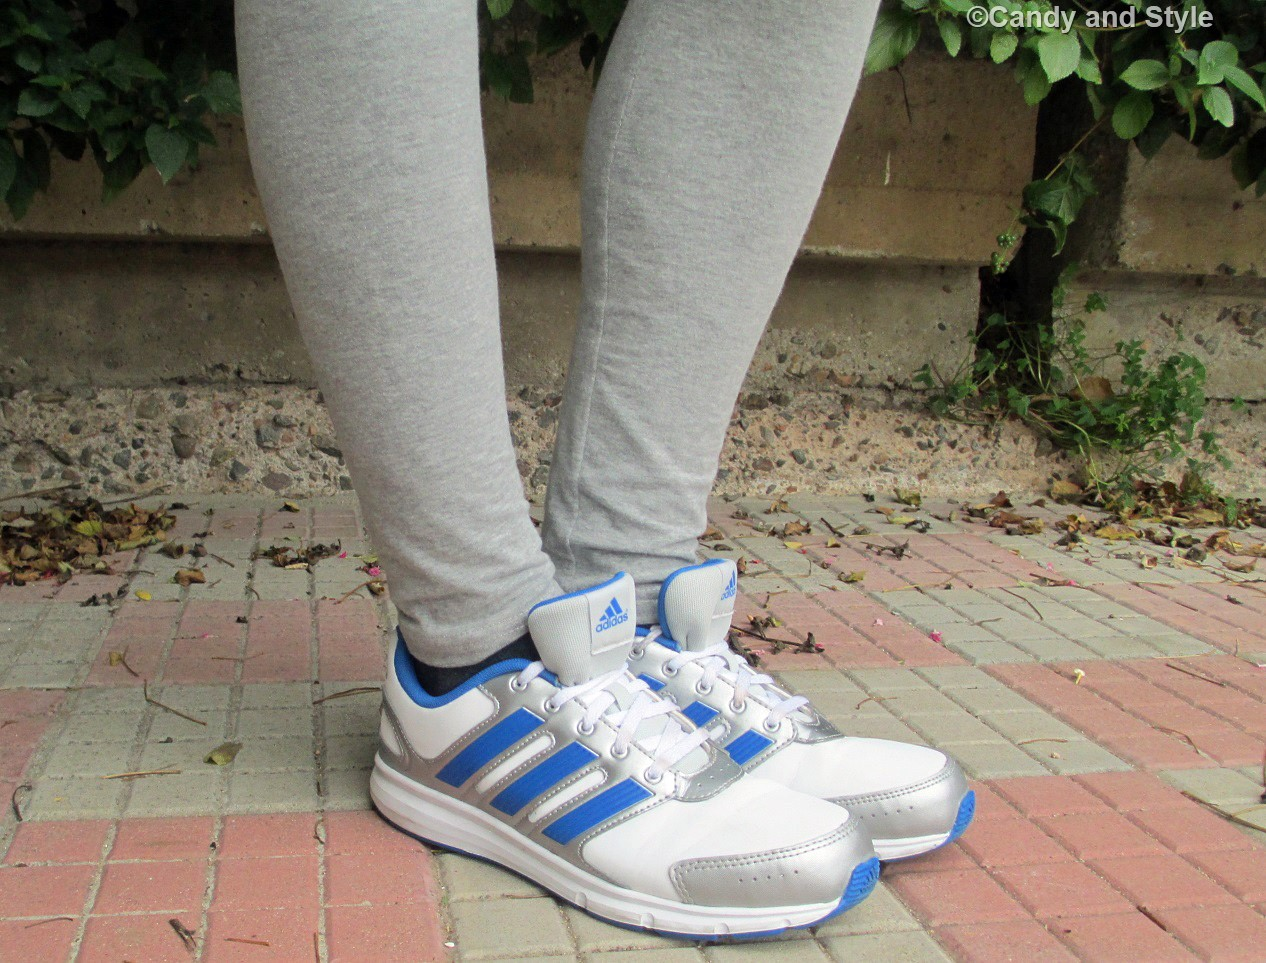 Trainers - Sporty Chic